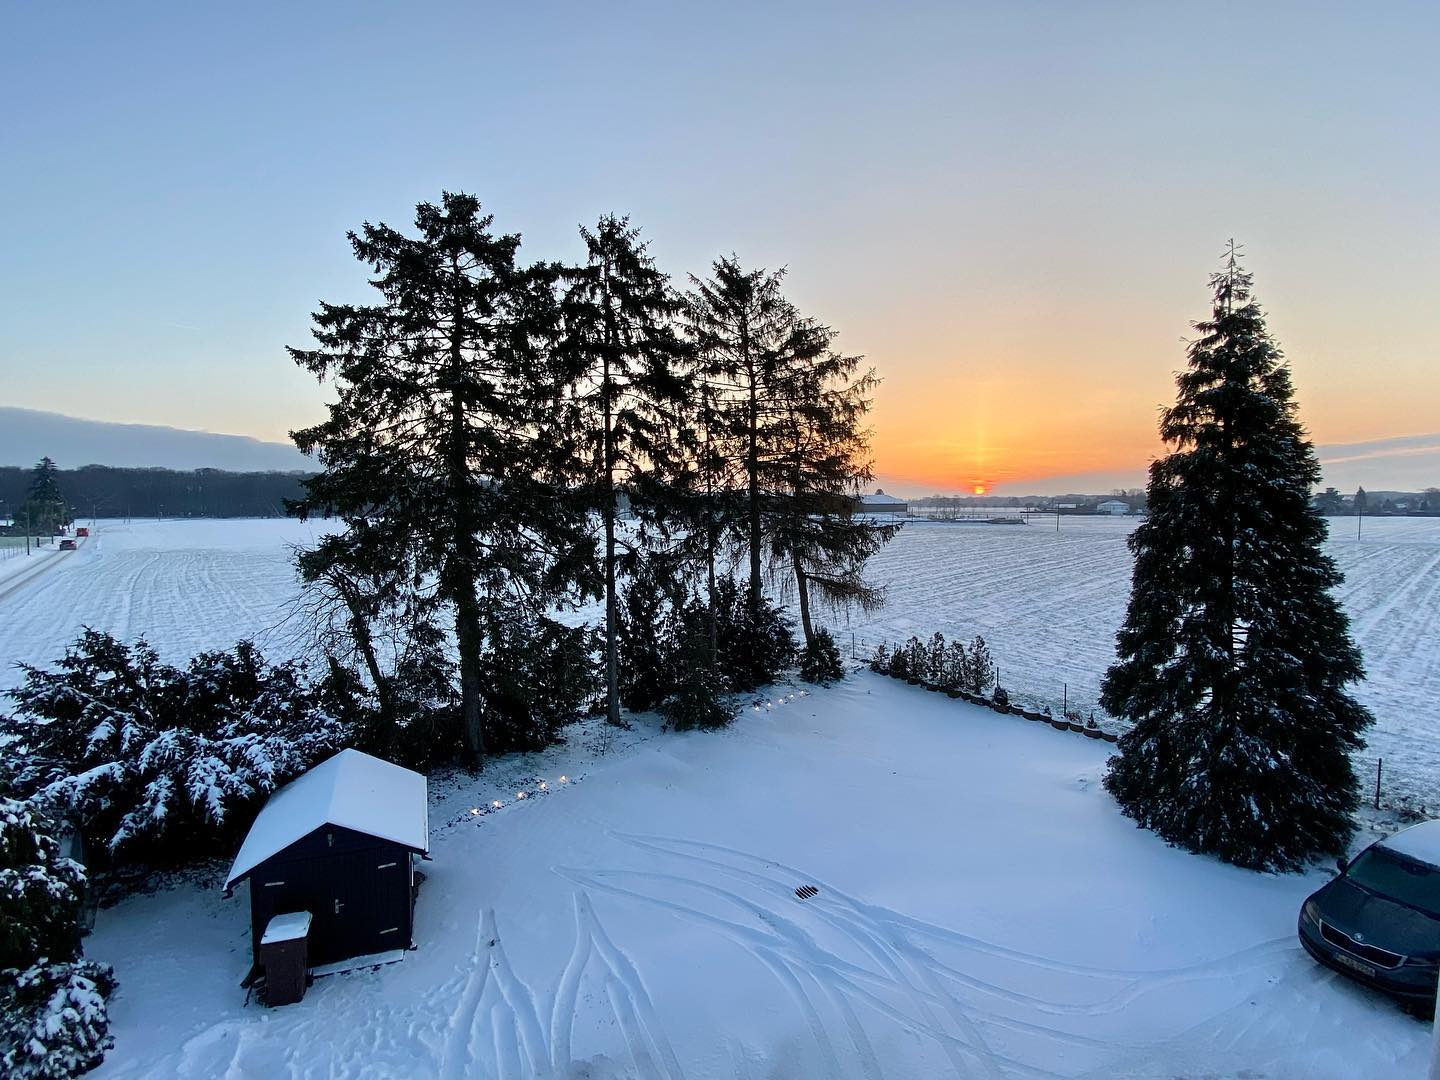 Cold and peaceful with -9 C